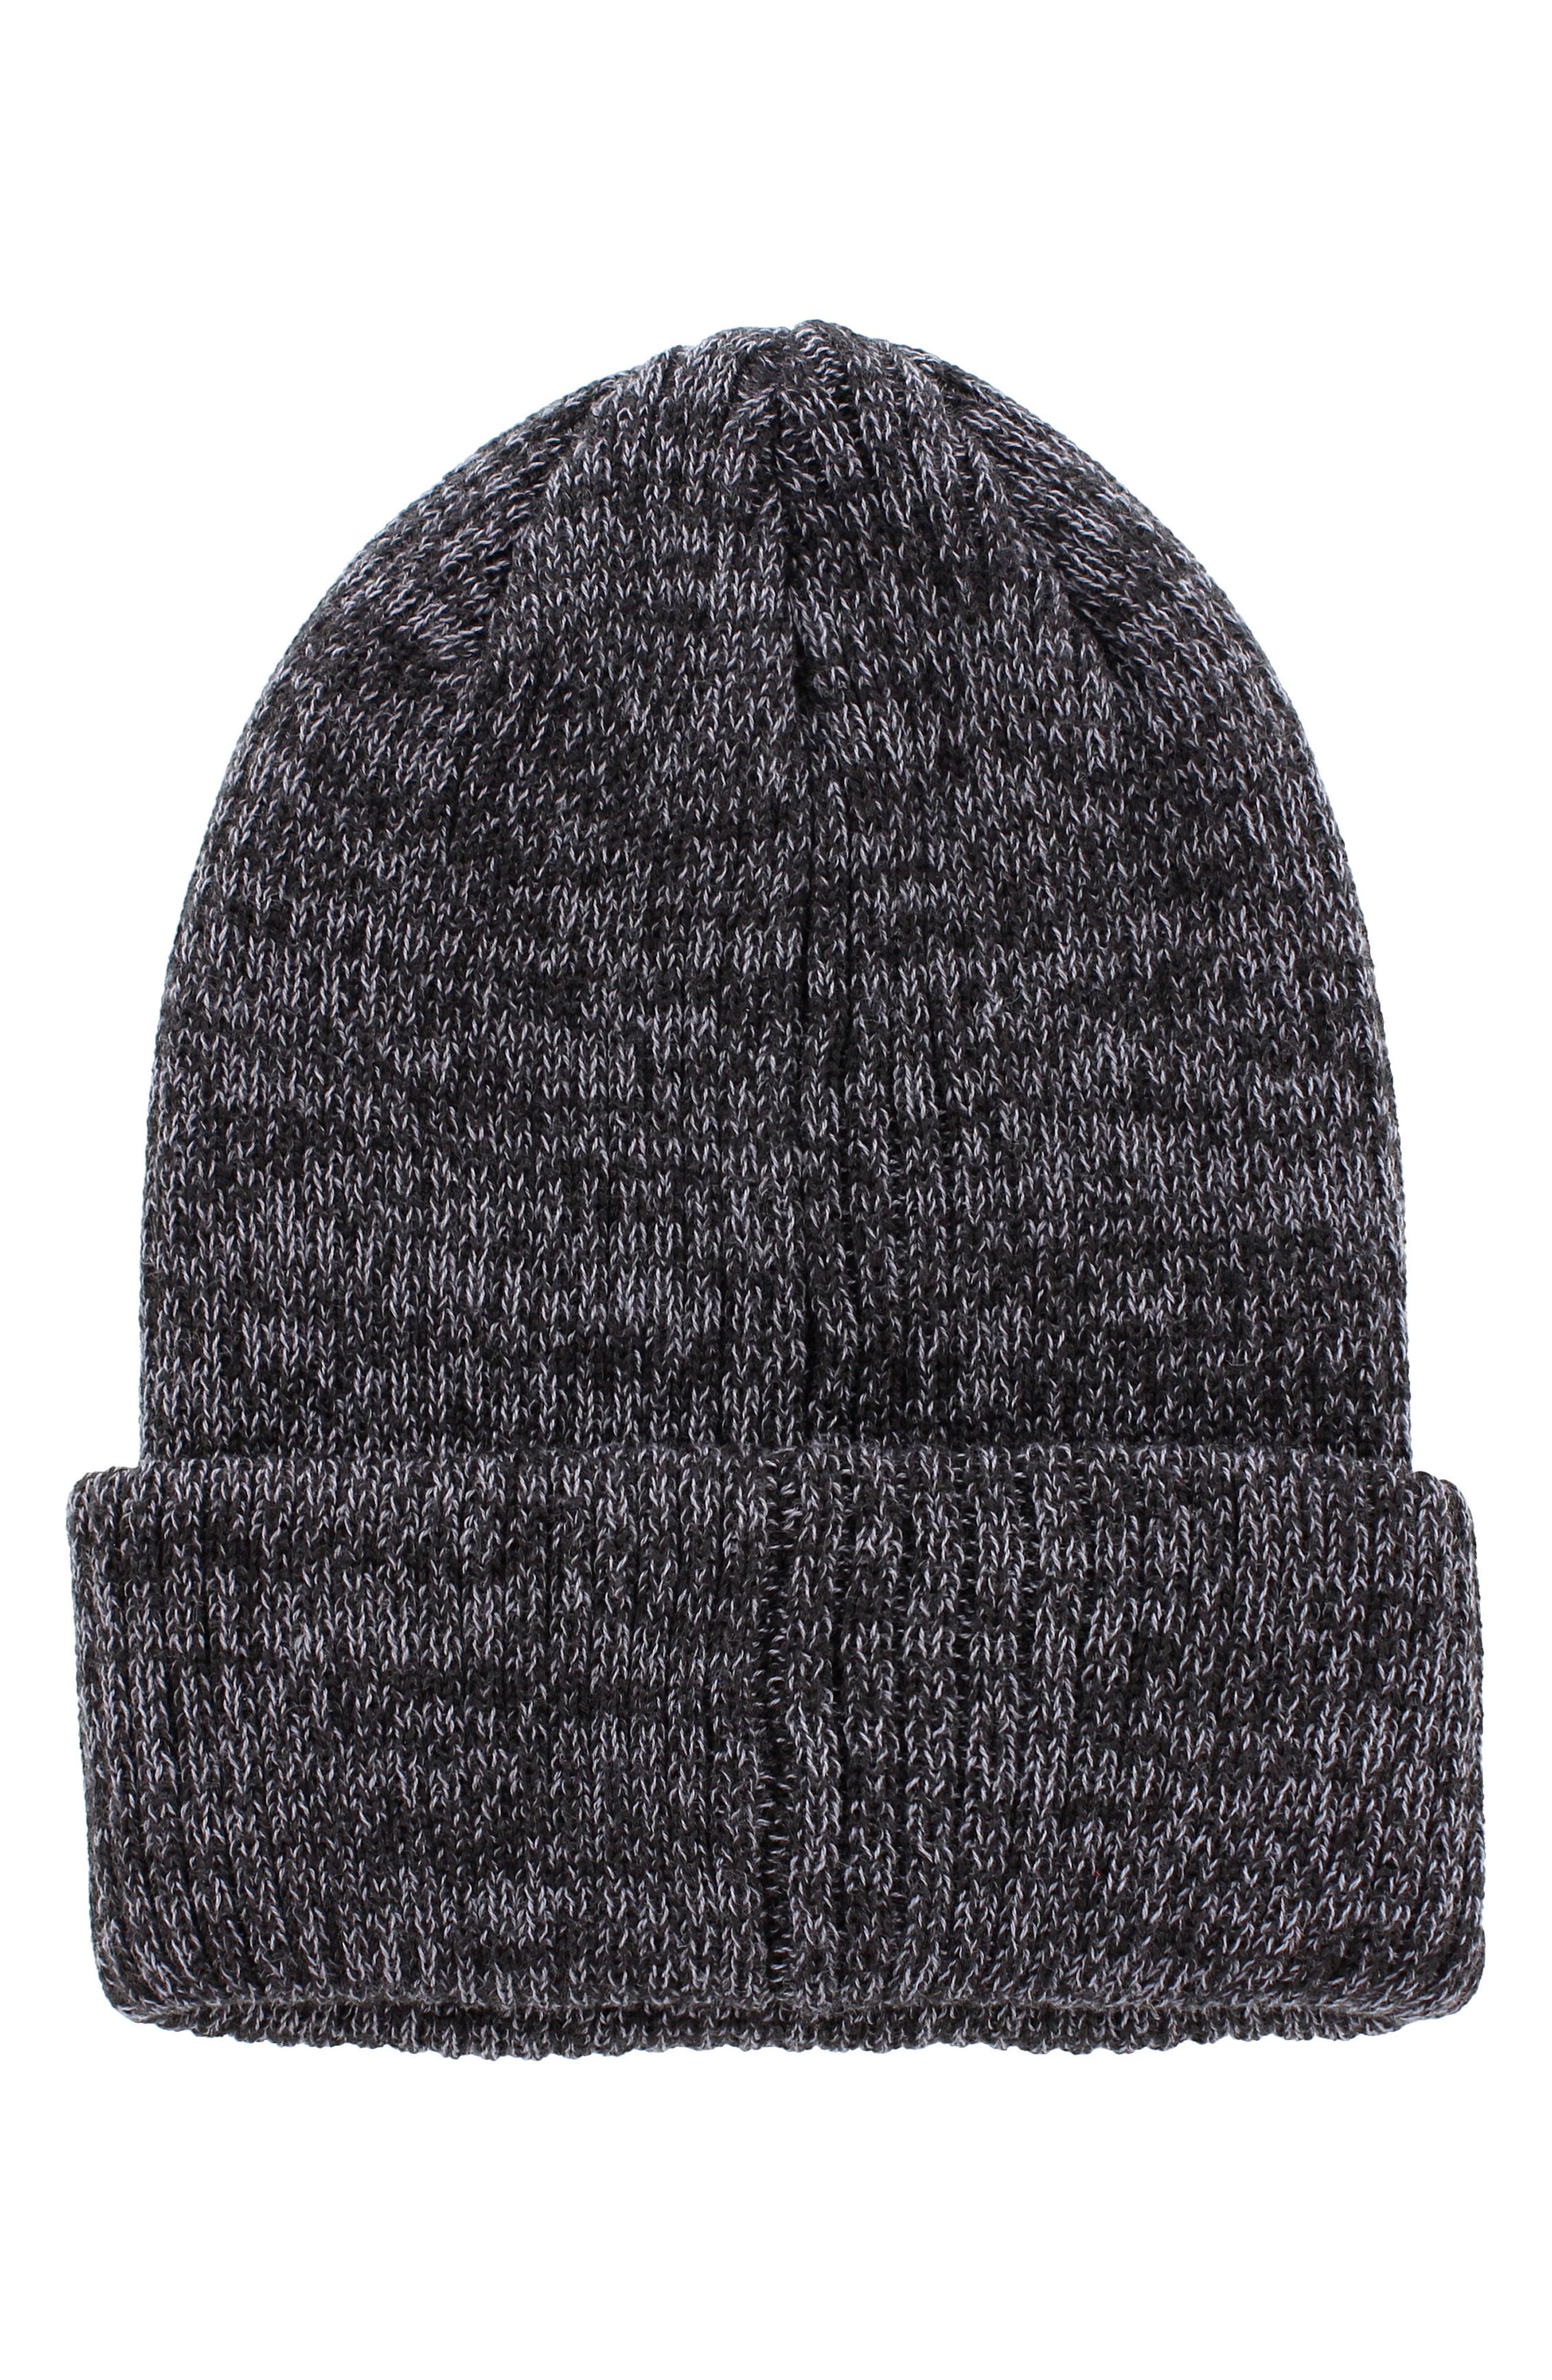 NMD Knit Cap,                             Alternate thumbnail 2, color,                             001